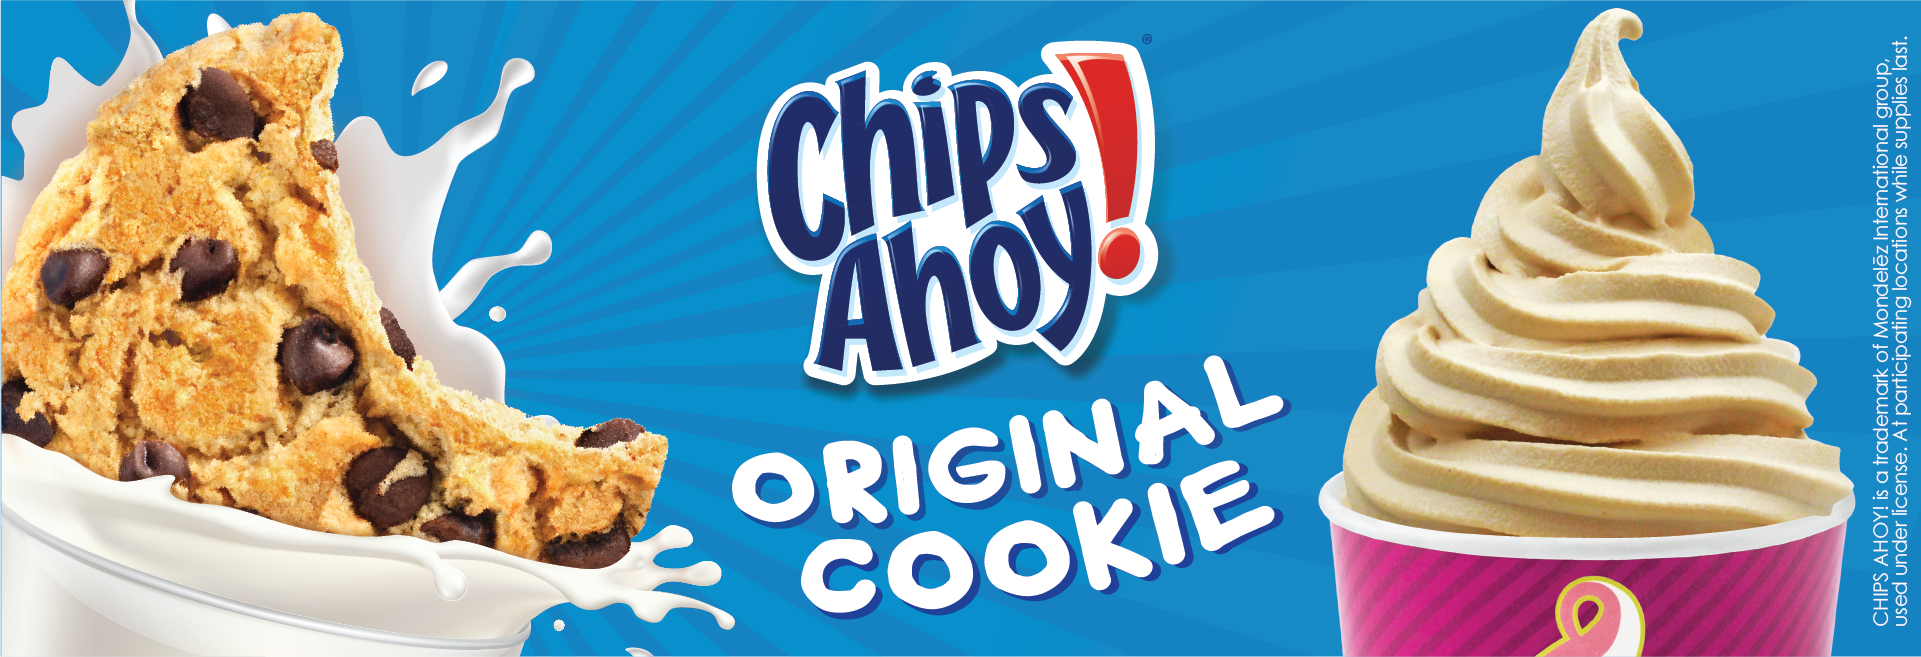 Chips Ahoy! Original Cookie. Cookie lovers rejoice! We partnered with Chips Ahoy! to create a new Menchie's fro-yo cookie masterpiece. Made with real Chips Ahoy! cookie pieces, this flavor is sure to satisfy your cookie cravings.